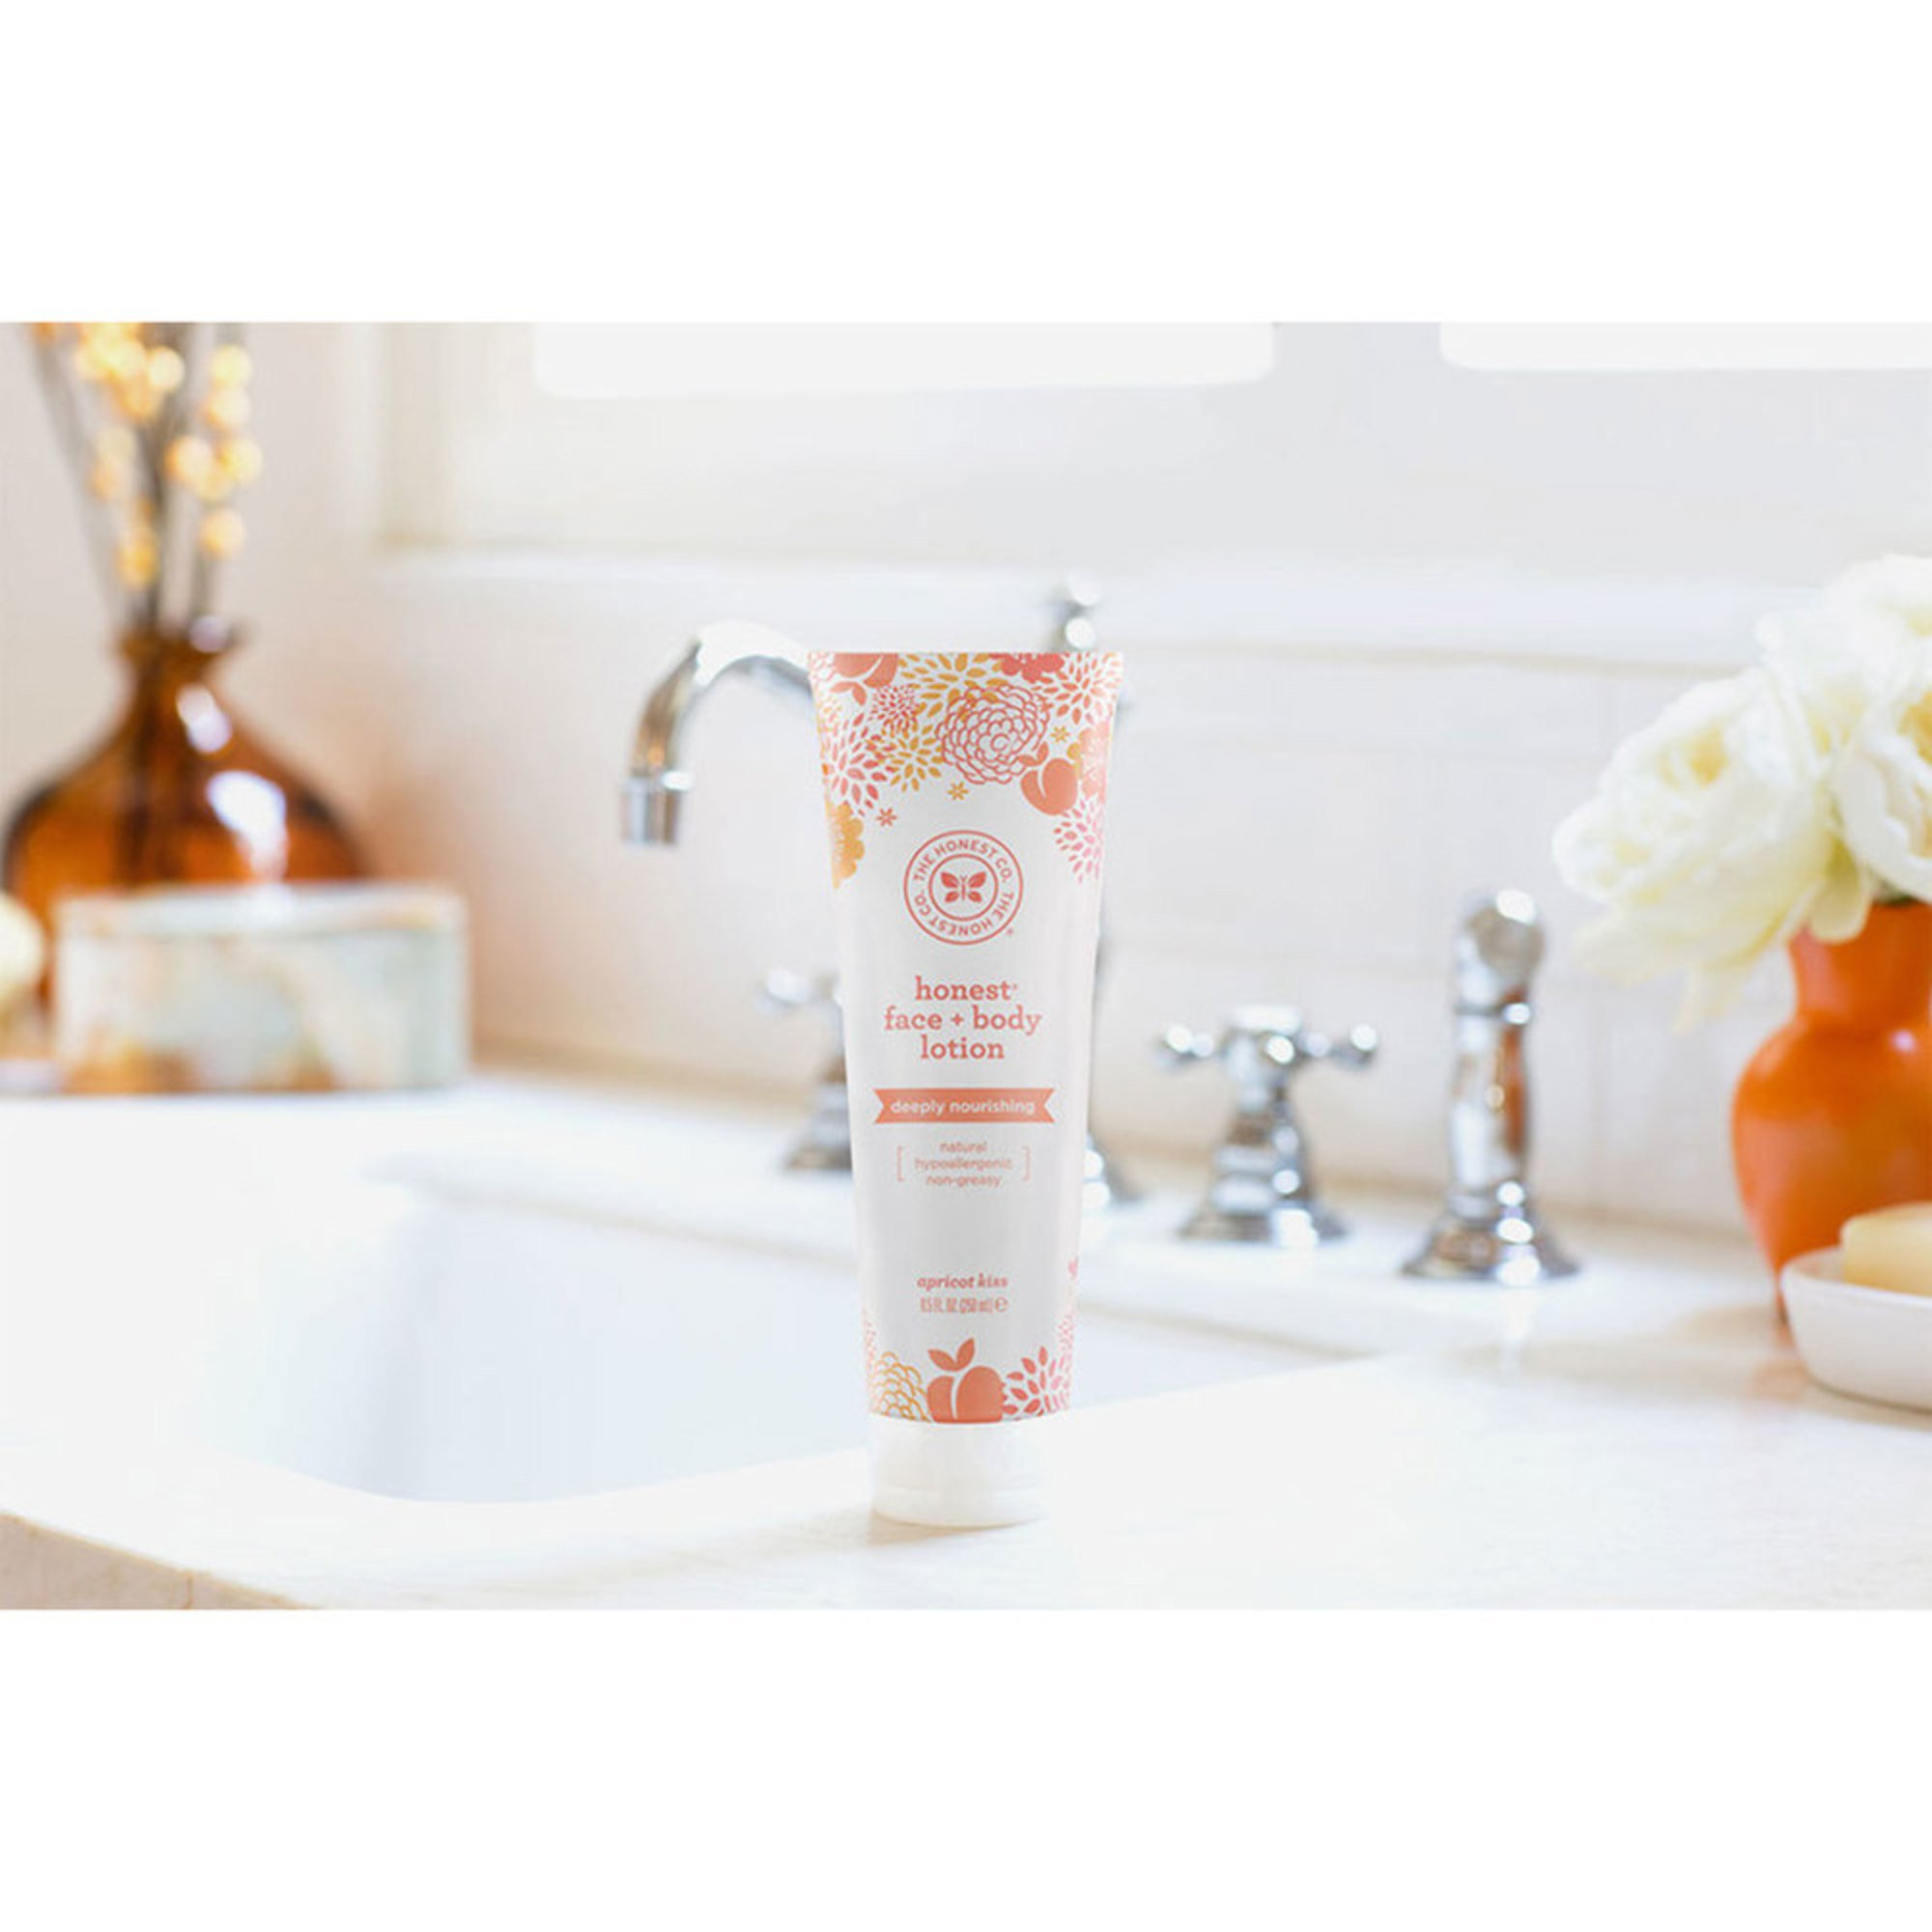 Kiss For Women By Kiss Lovin Body Lotion 6 7 Oz: The Honest Company Face + Body Lotion, Apricot Kiss 8.5oz